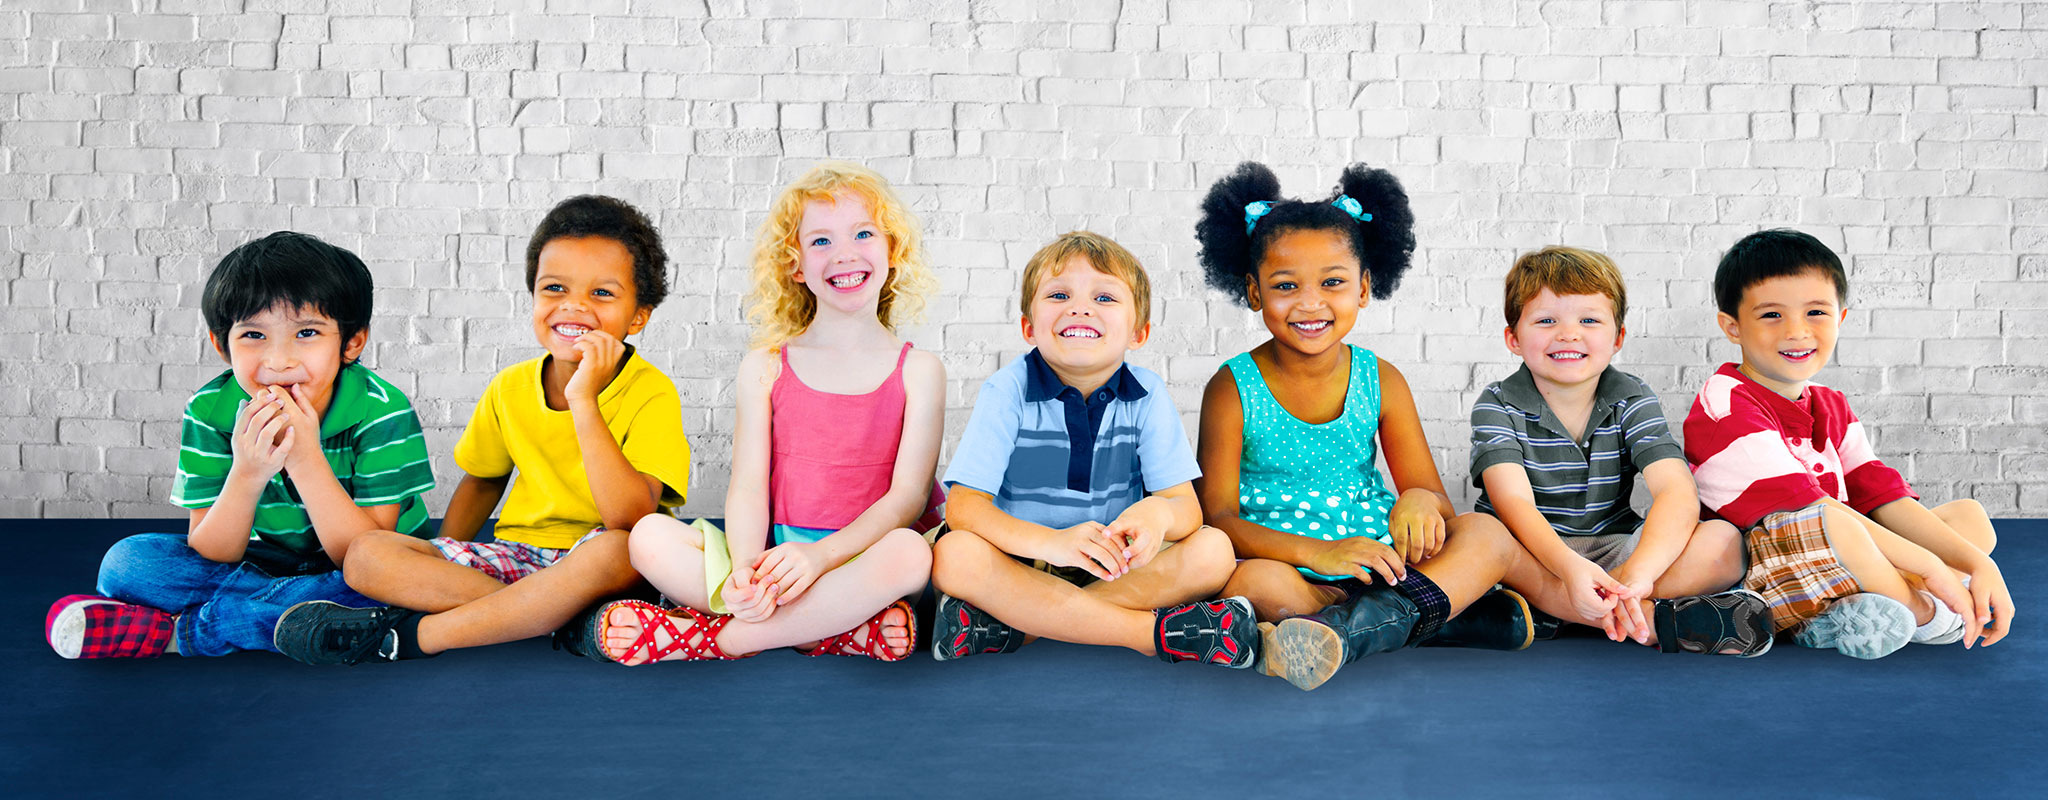 Group of kids sitting on floor Banner image for Gwinnett Pediatrics and Adolescent Medicine, Gwinnett Pediatricians